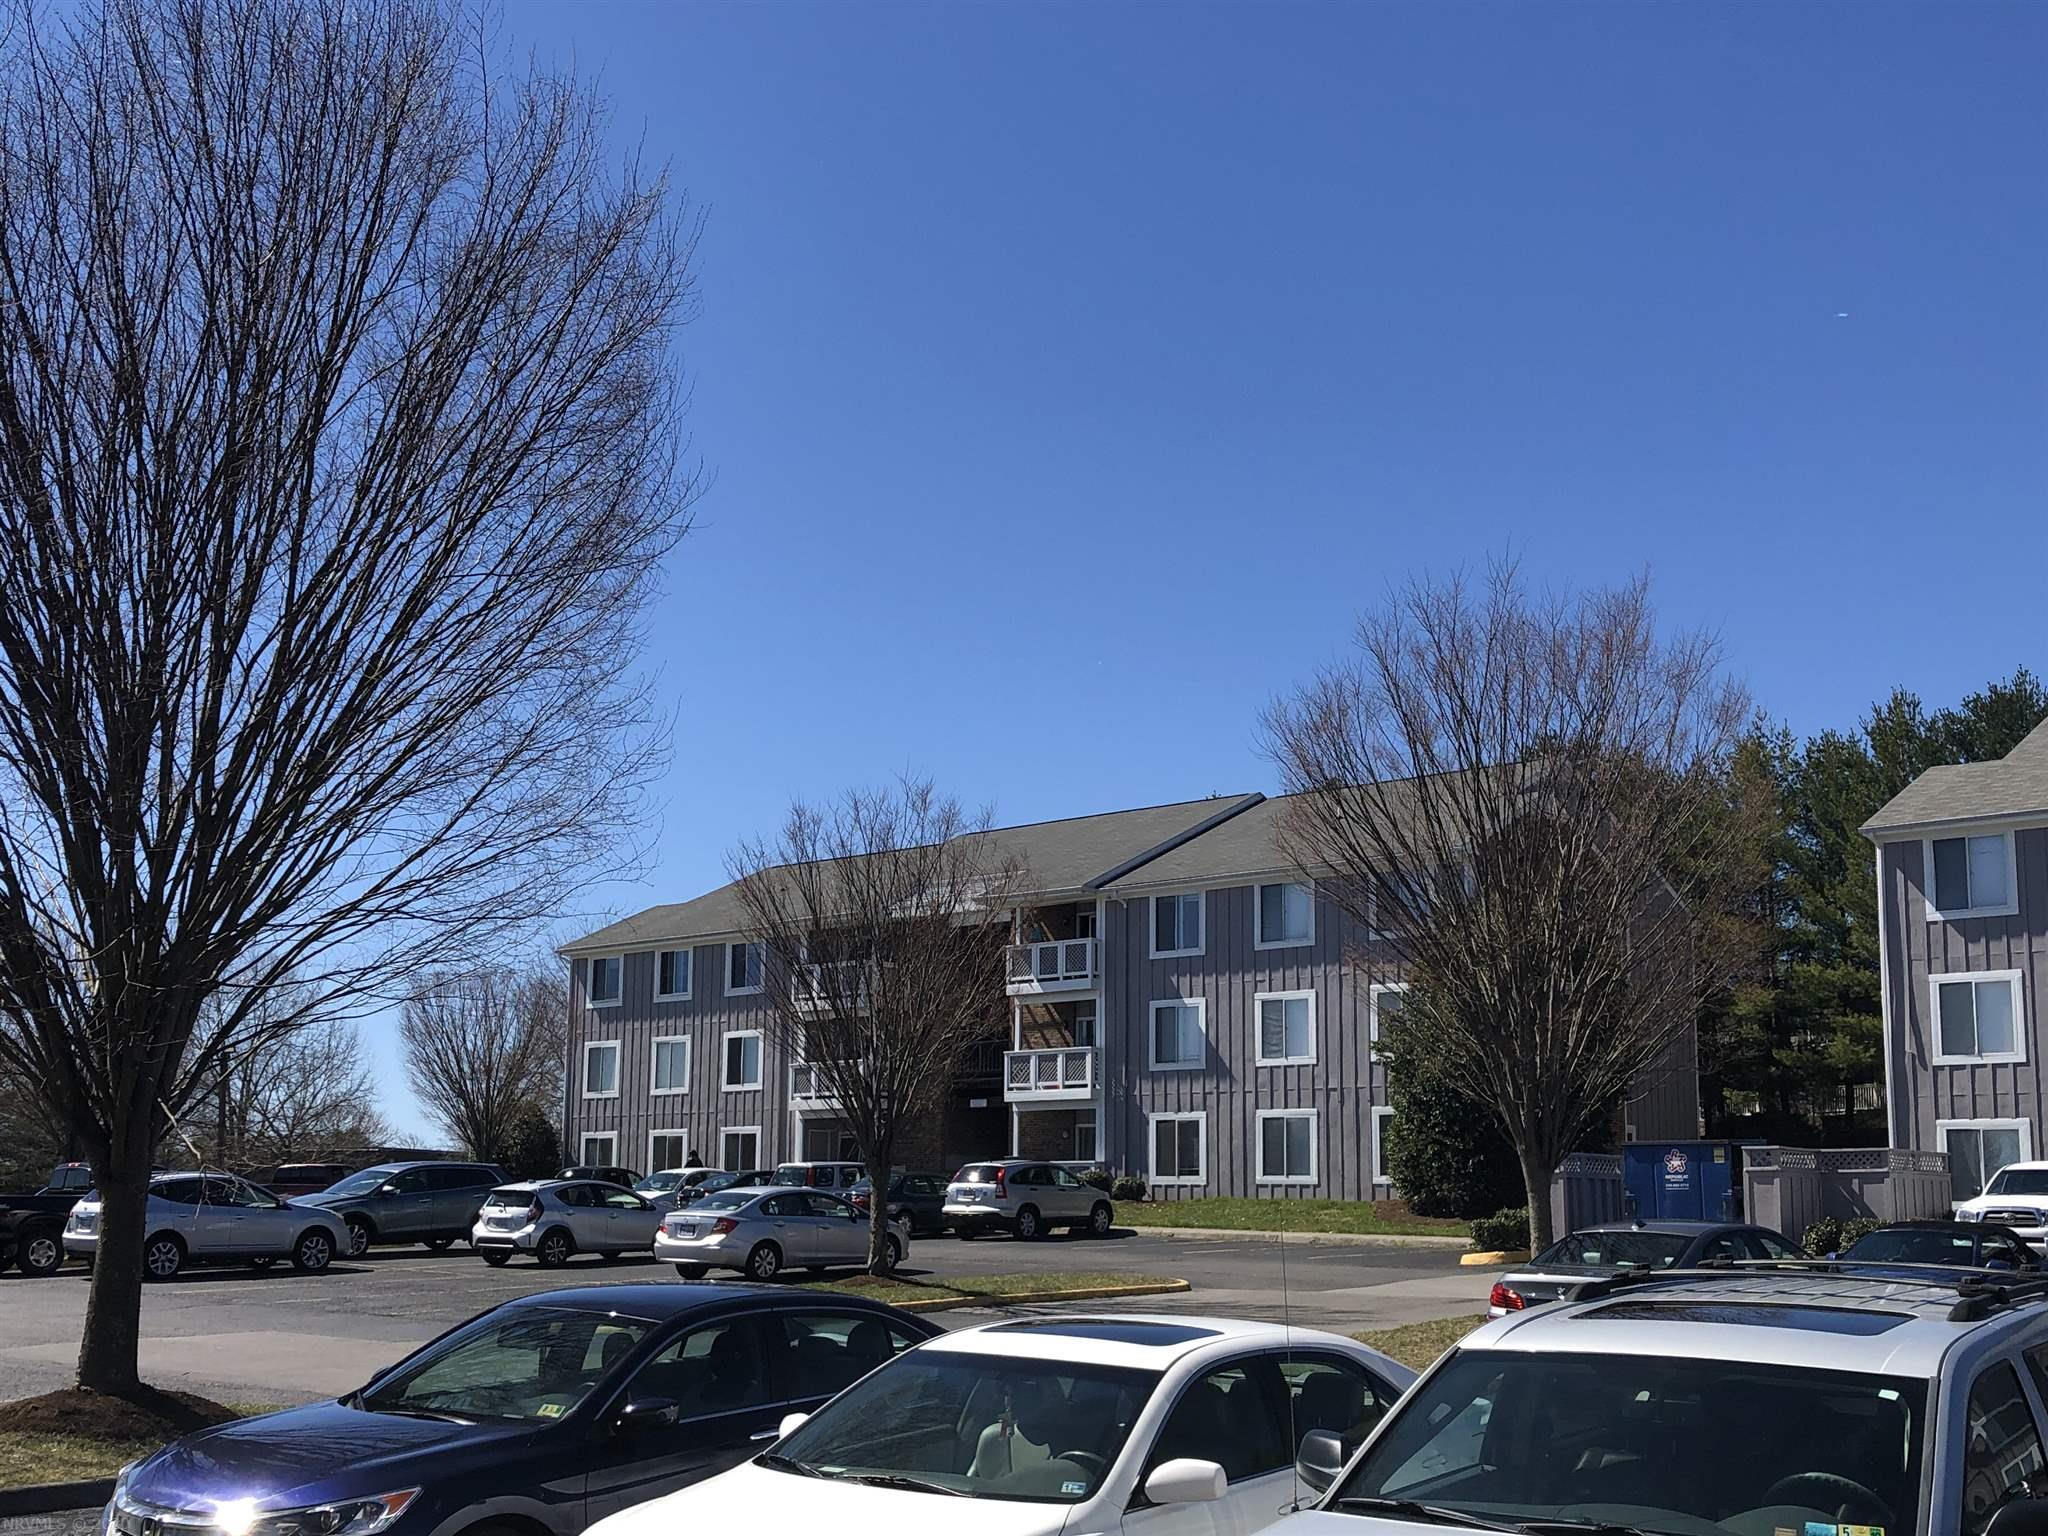 Nice Condo with an updated kitchen.  Ground floor unit with a view! This condo is private and quiet.  New plumbing throughout the unit as well as new lighting. This condo won't last long - make plans to see it soon.